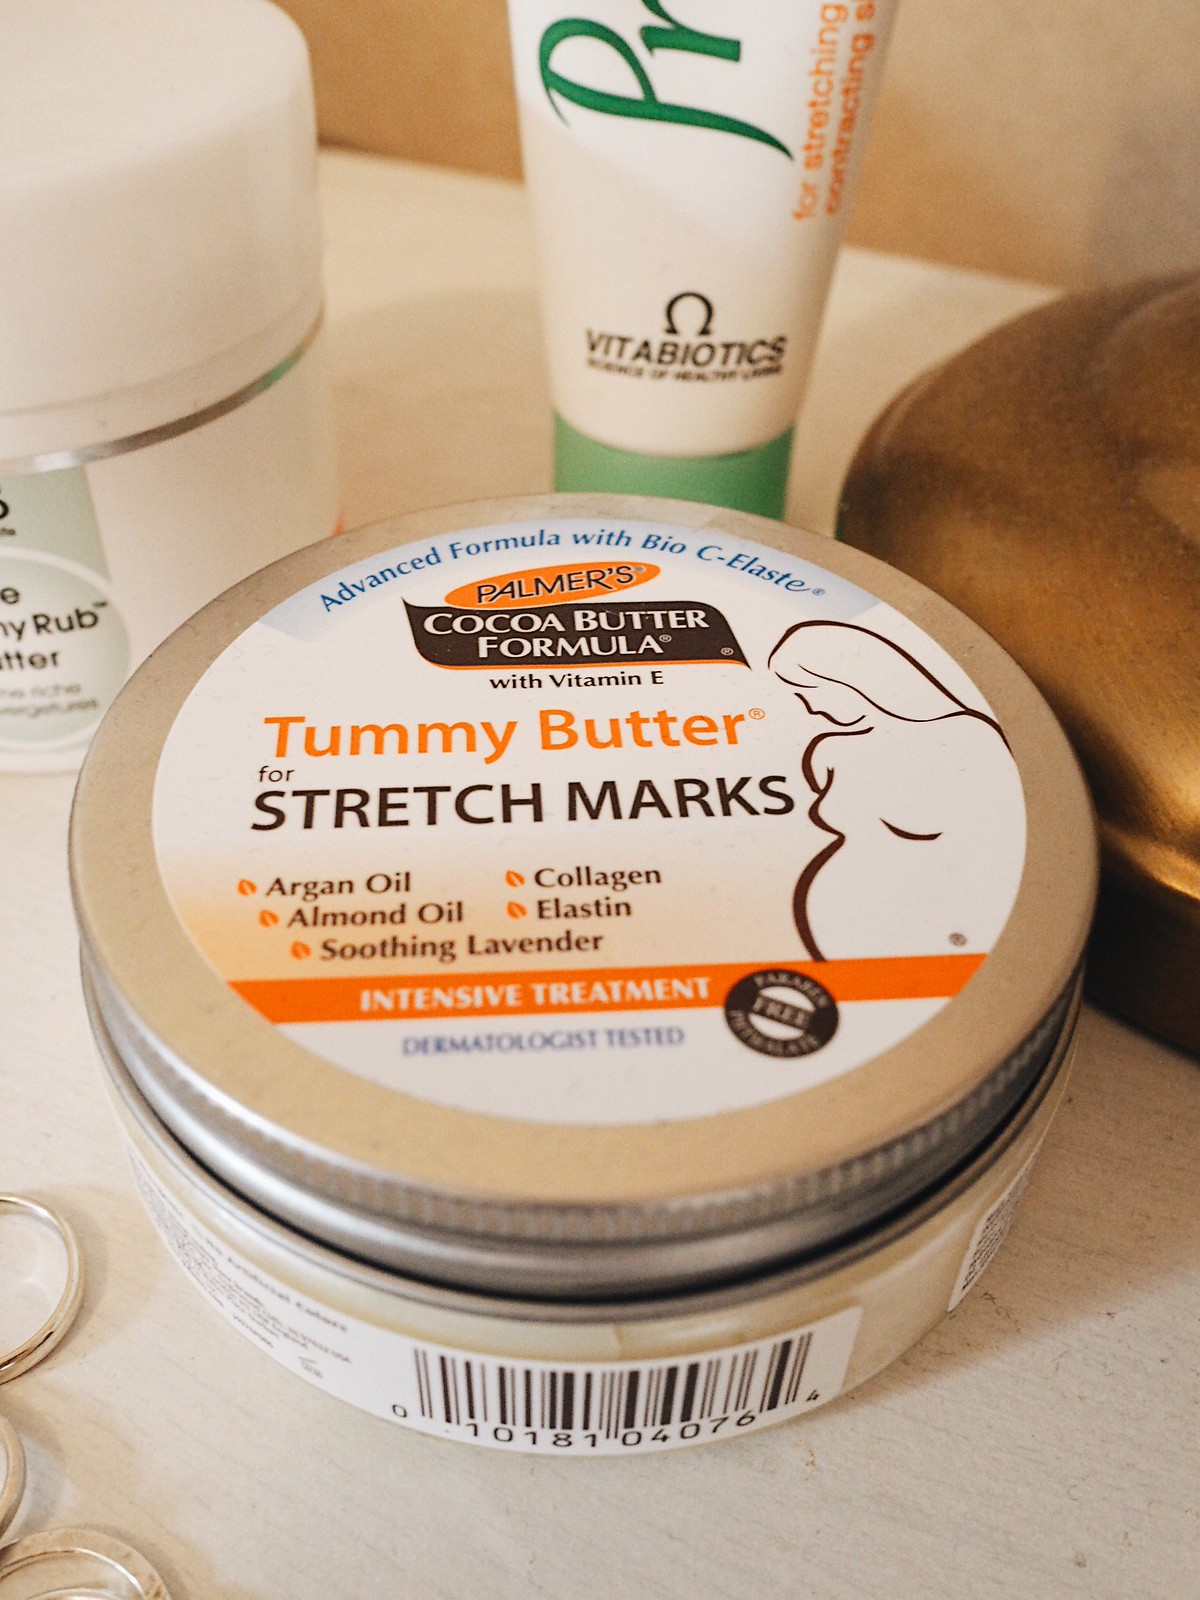 The Stretch Mark Creams I am using in Pregnancy | Hannah and The Blog